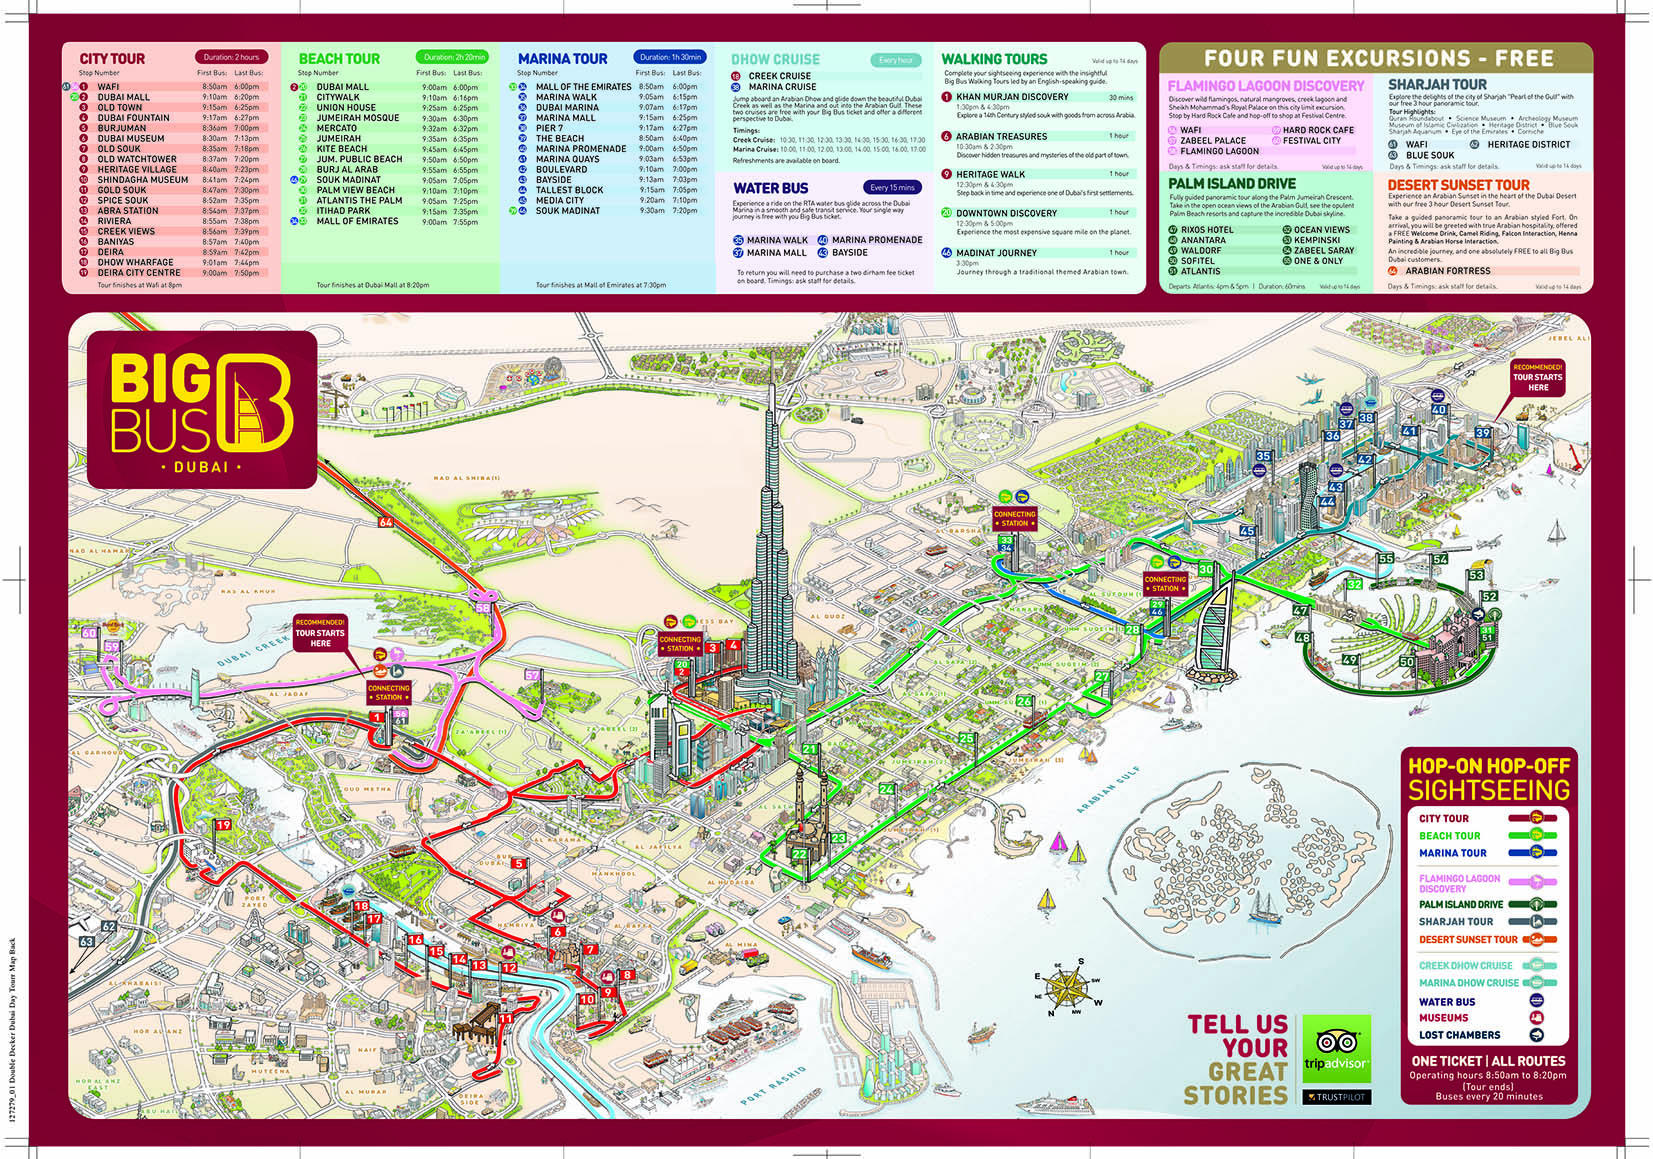 Dubai Big Bus Hop-On Hop-Off Bus Map